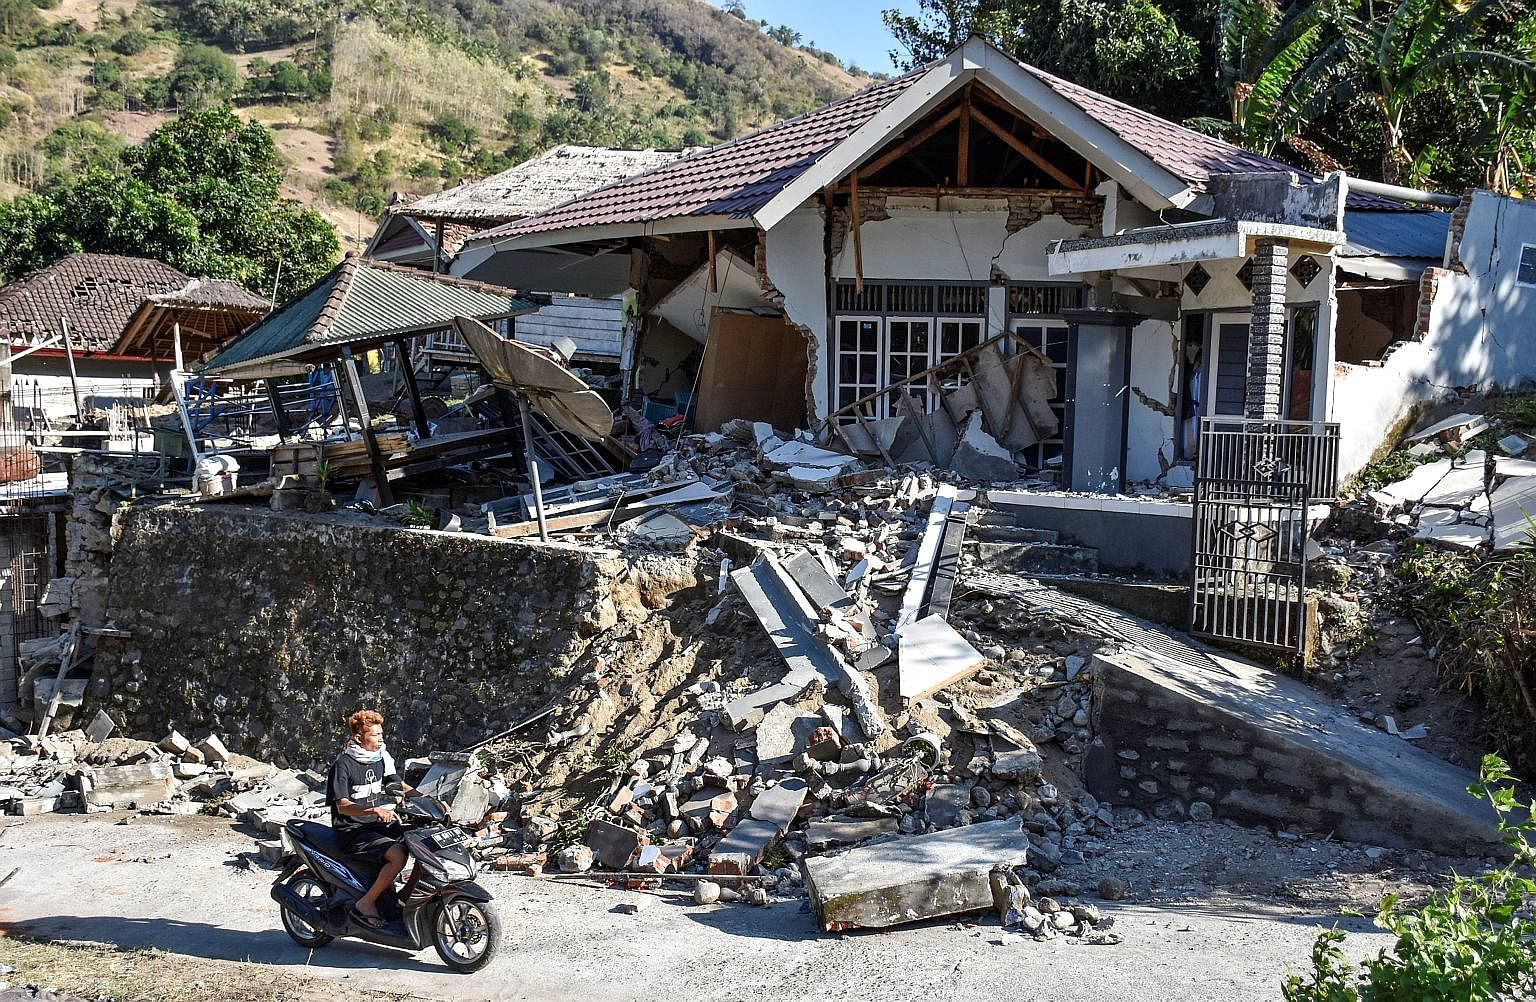 A damaged home in Pemenang, North Lombok, in Indonesia following Sunday's magnitude-7 earthquake. Indonesians on the resort island of Lombok began returning to their destroyed homes yesterday, after the powerful quake killed at least 98, including tw